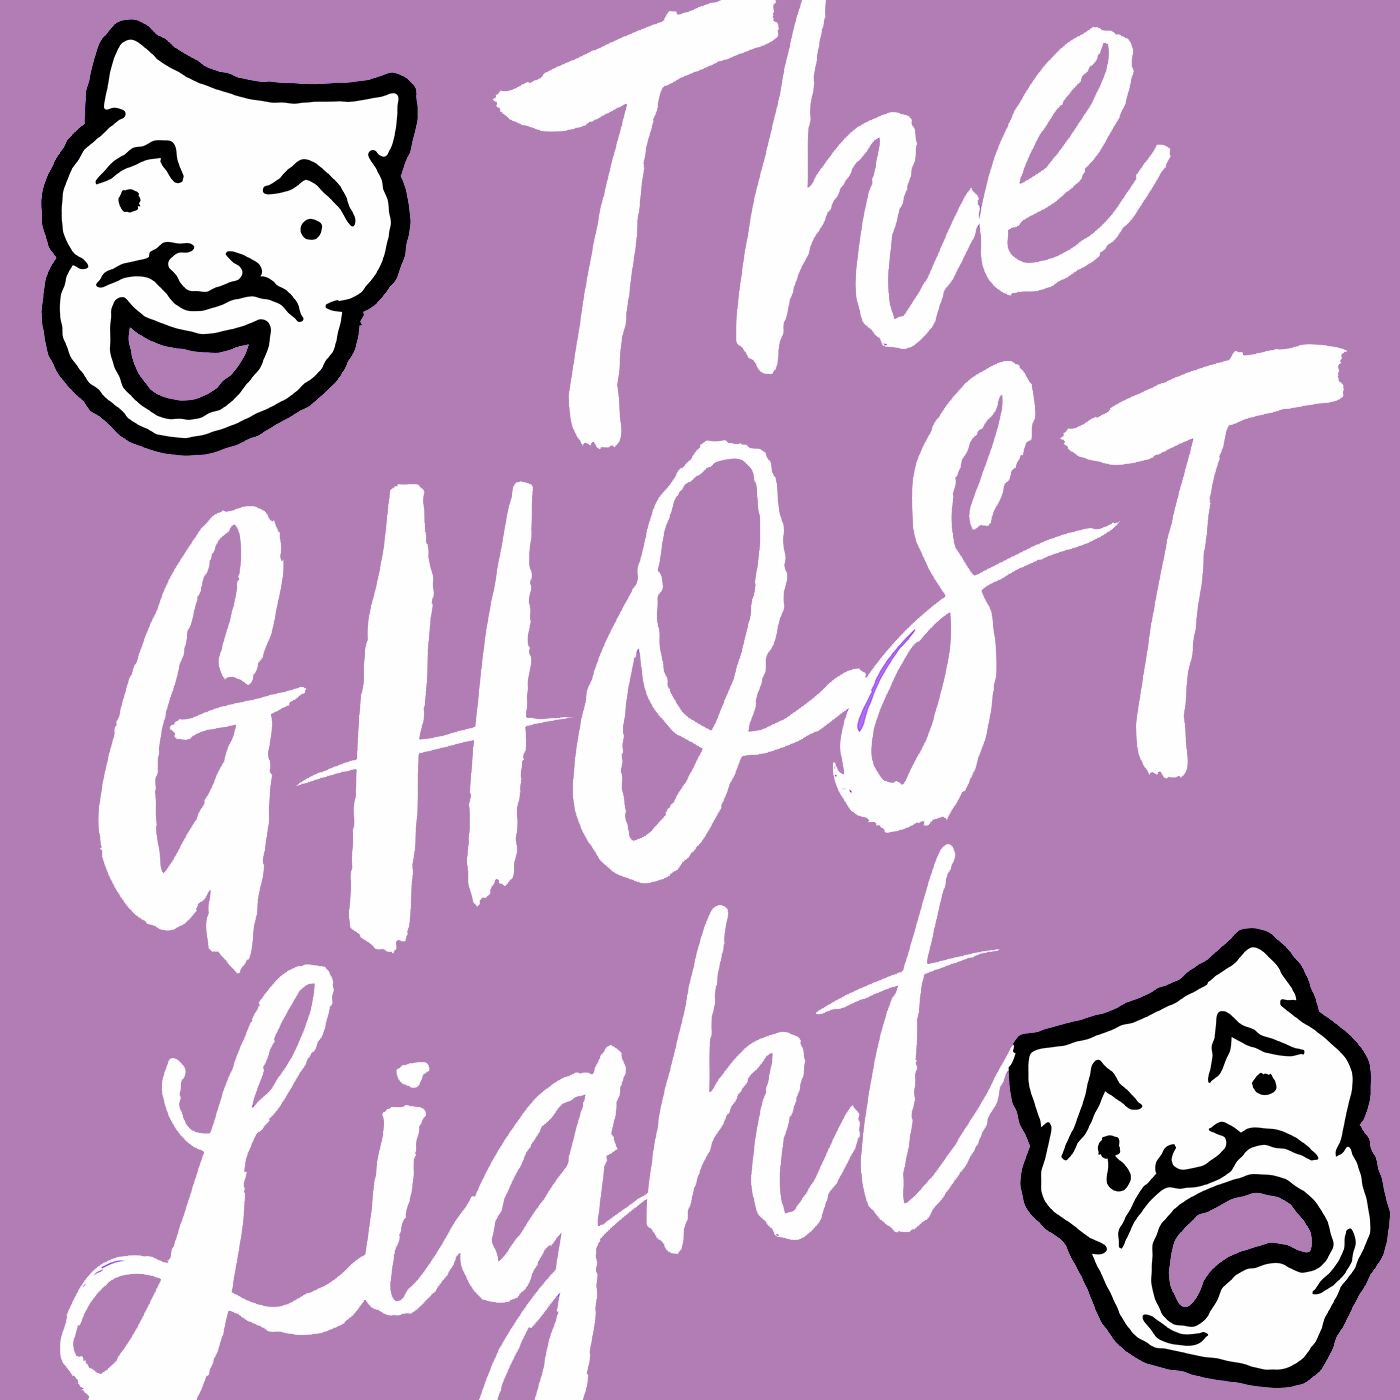 Theatre ghostlight clipart clip art transparent library The Ghost Light: A Theatre Interview Podcast | Listen via ... clip art transparent library